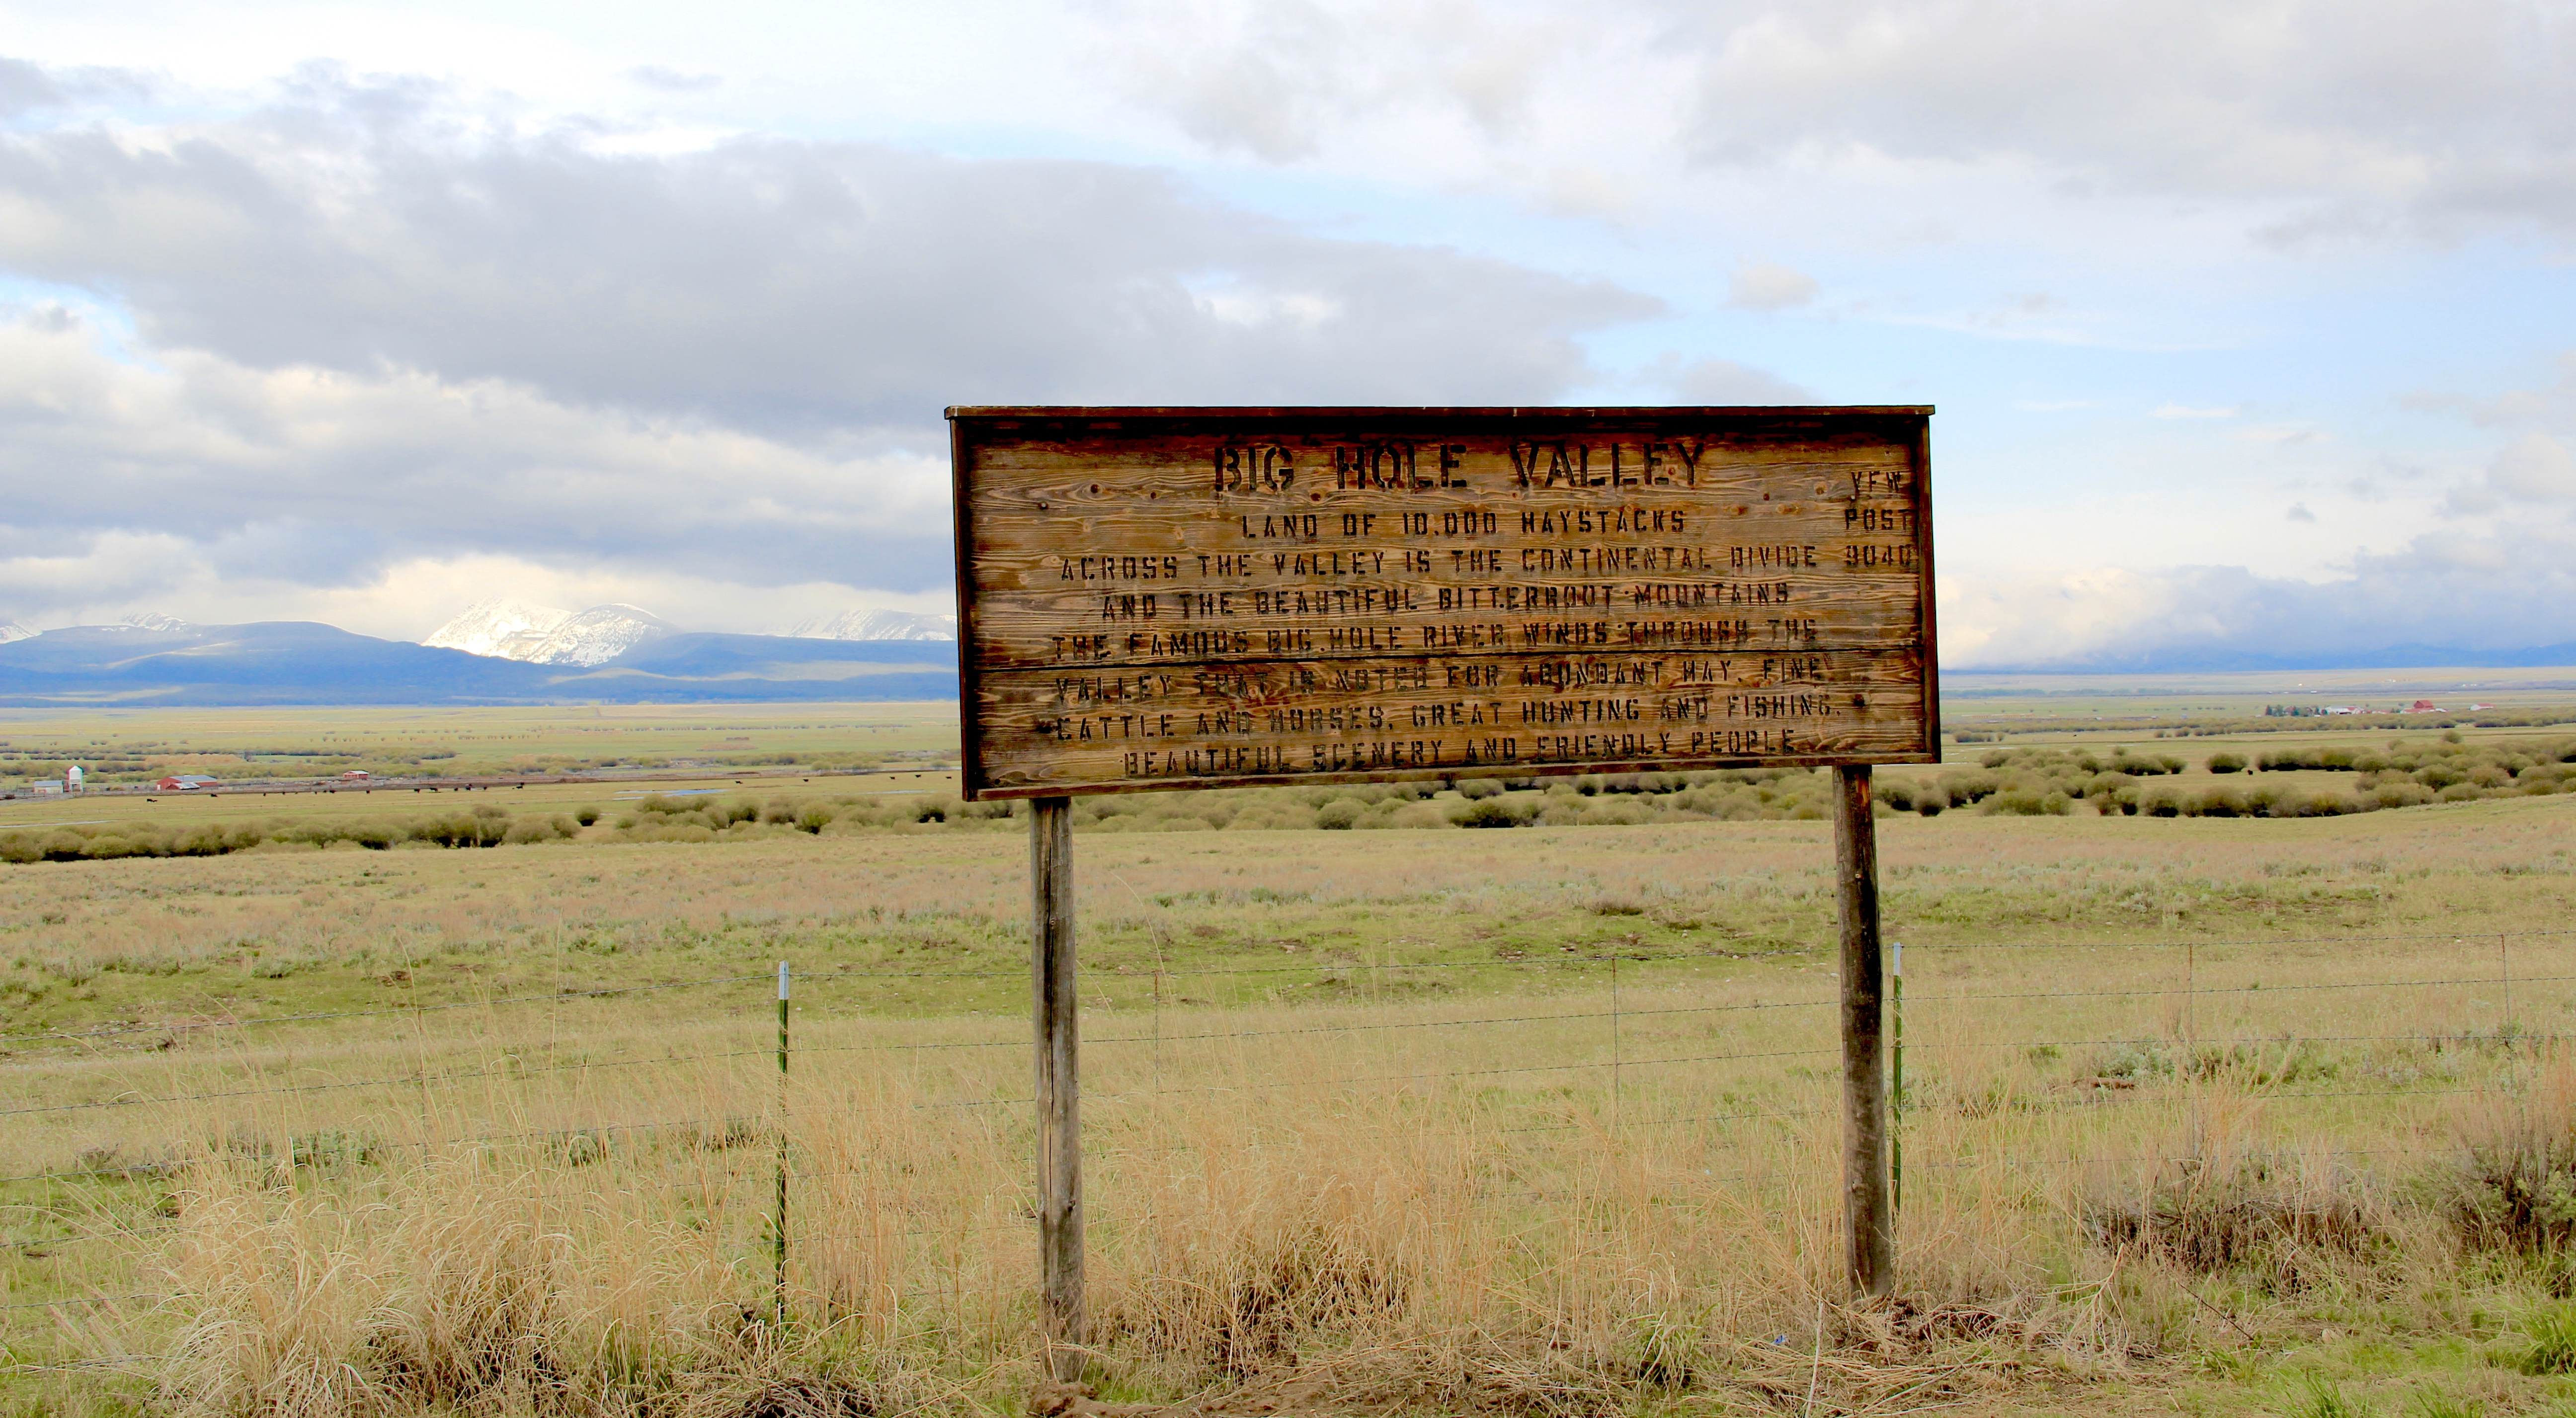 Big Hole Valley local sign MT 278